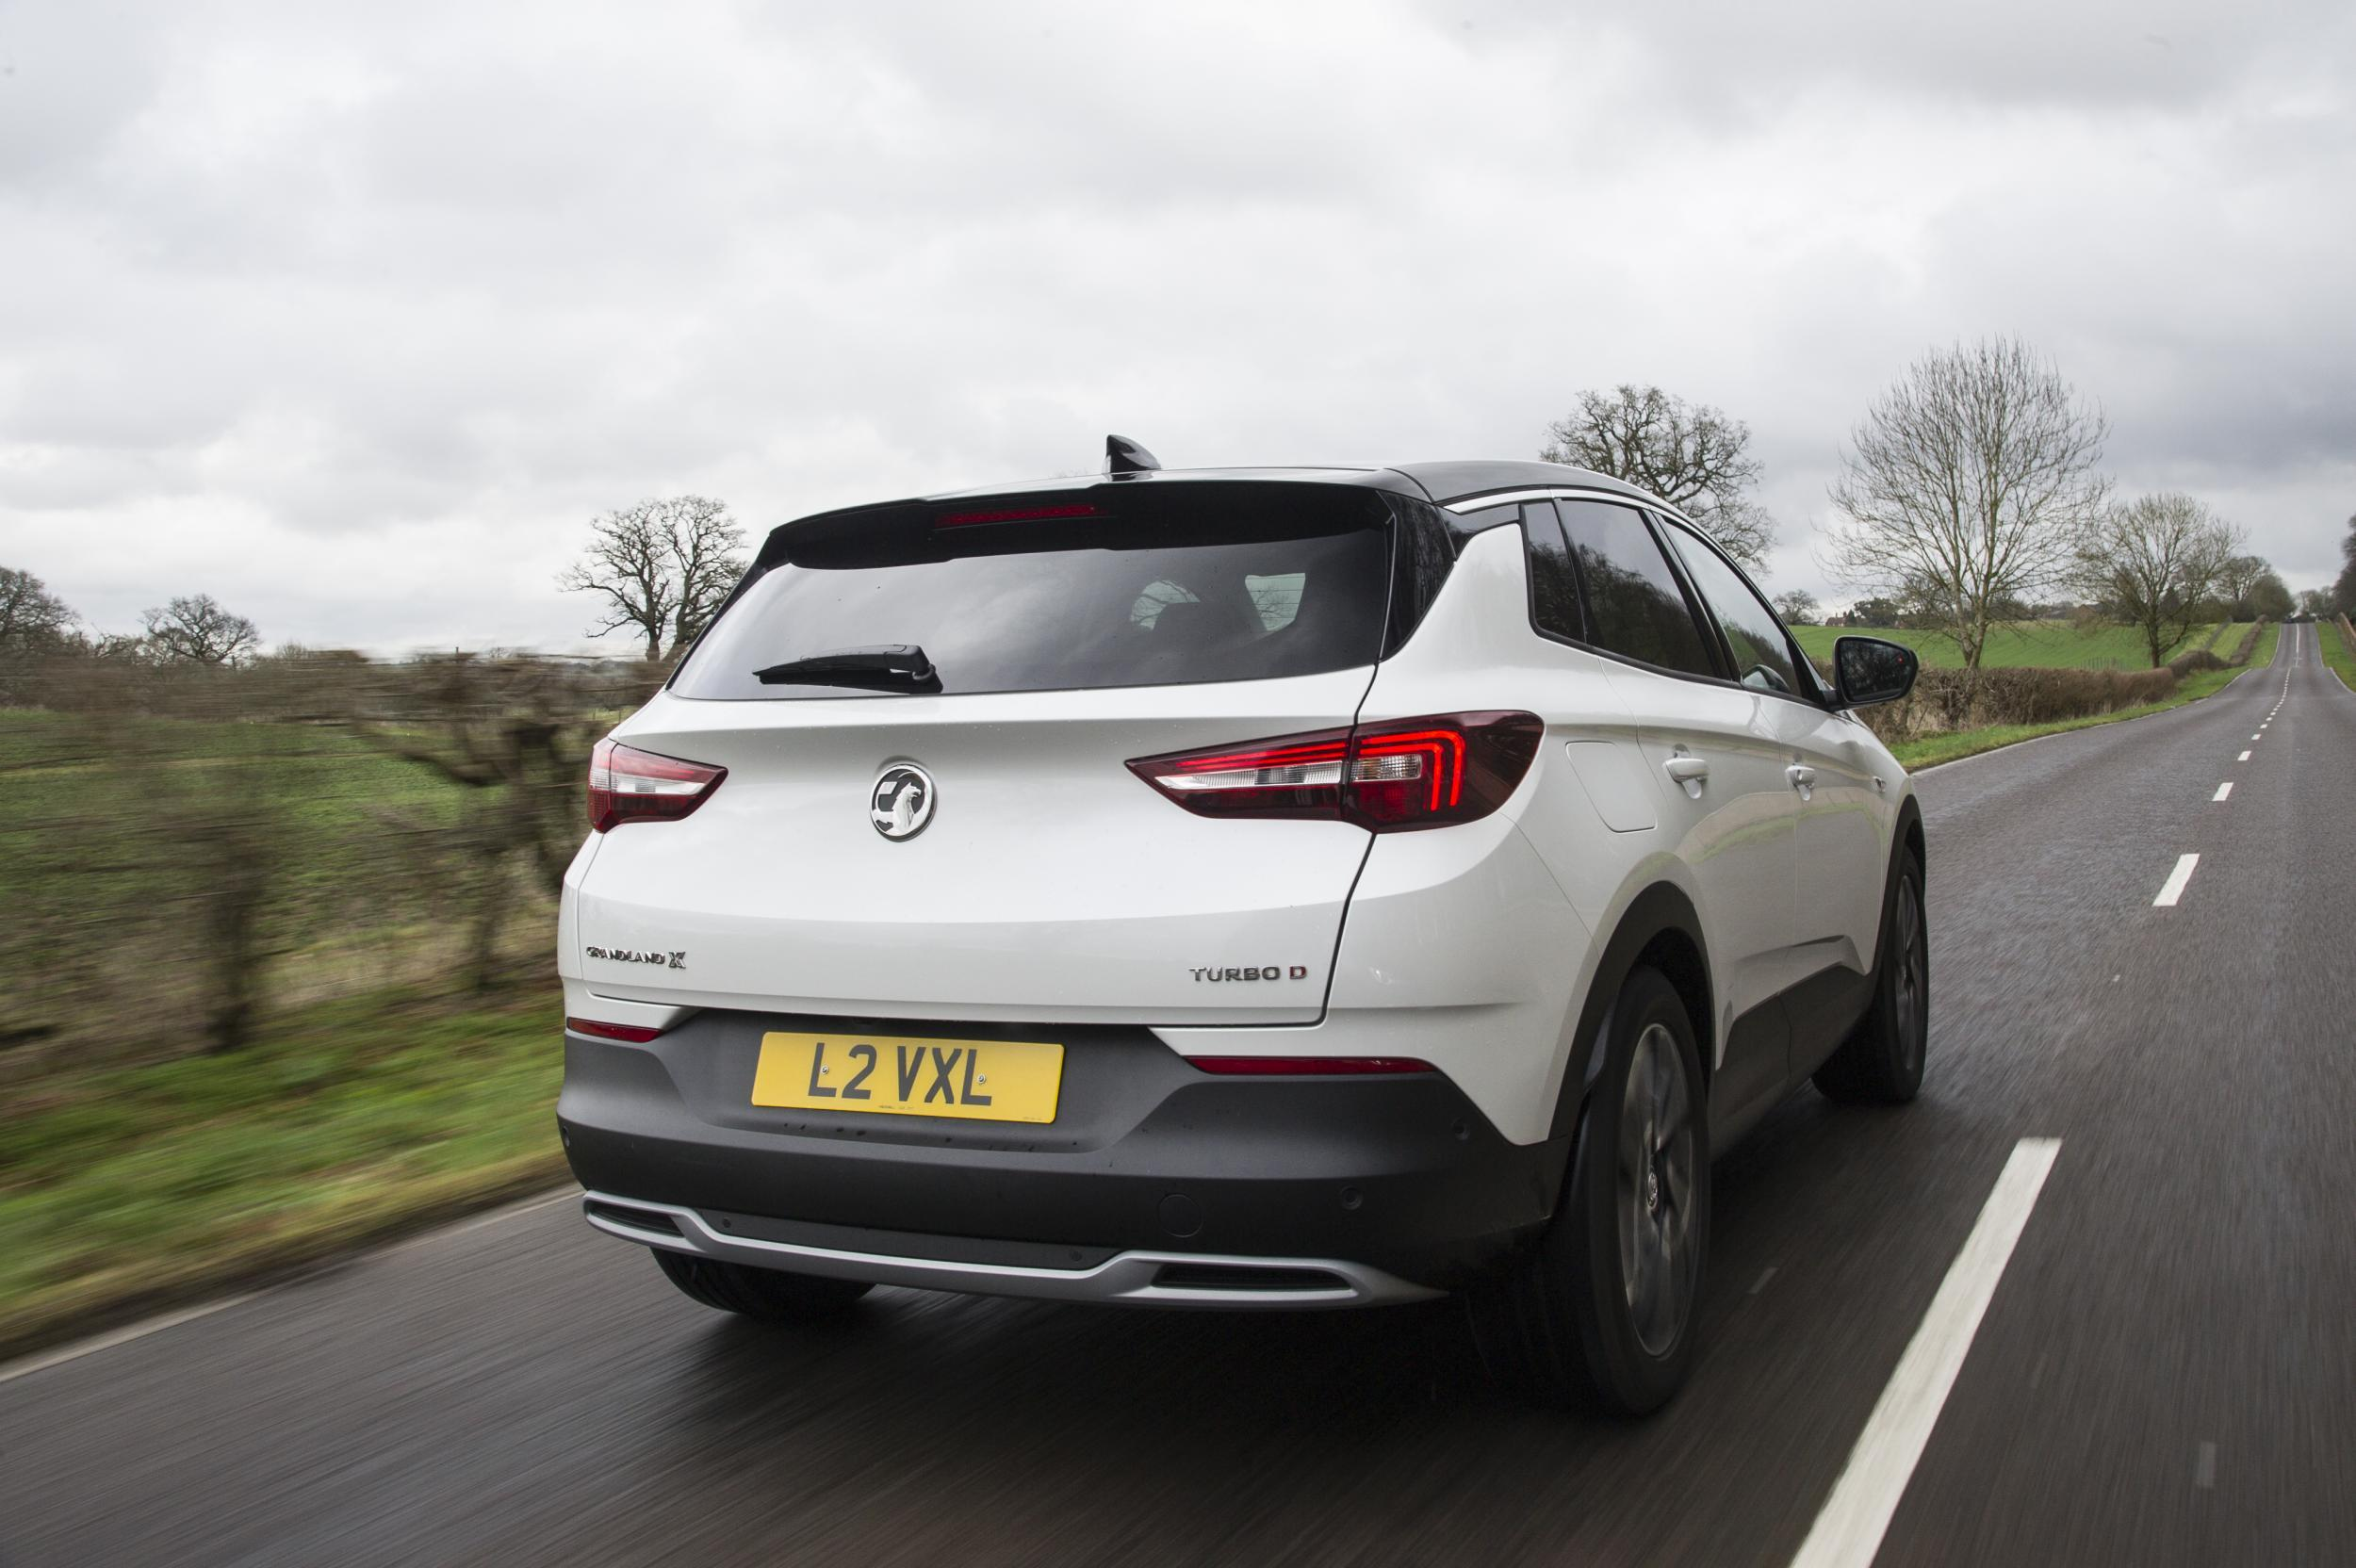 Vauxhall Grandland X, car review: A remarkably unremarkable